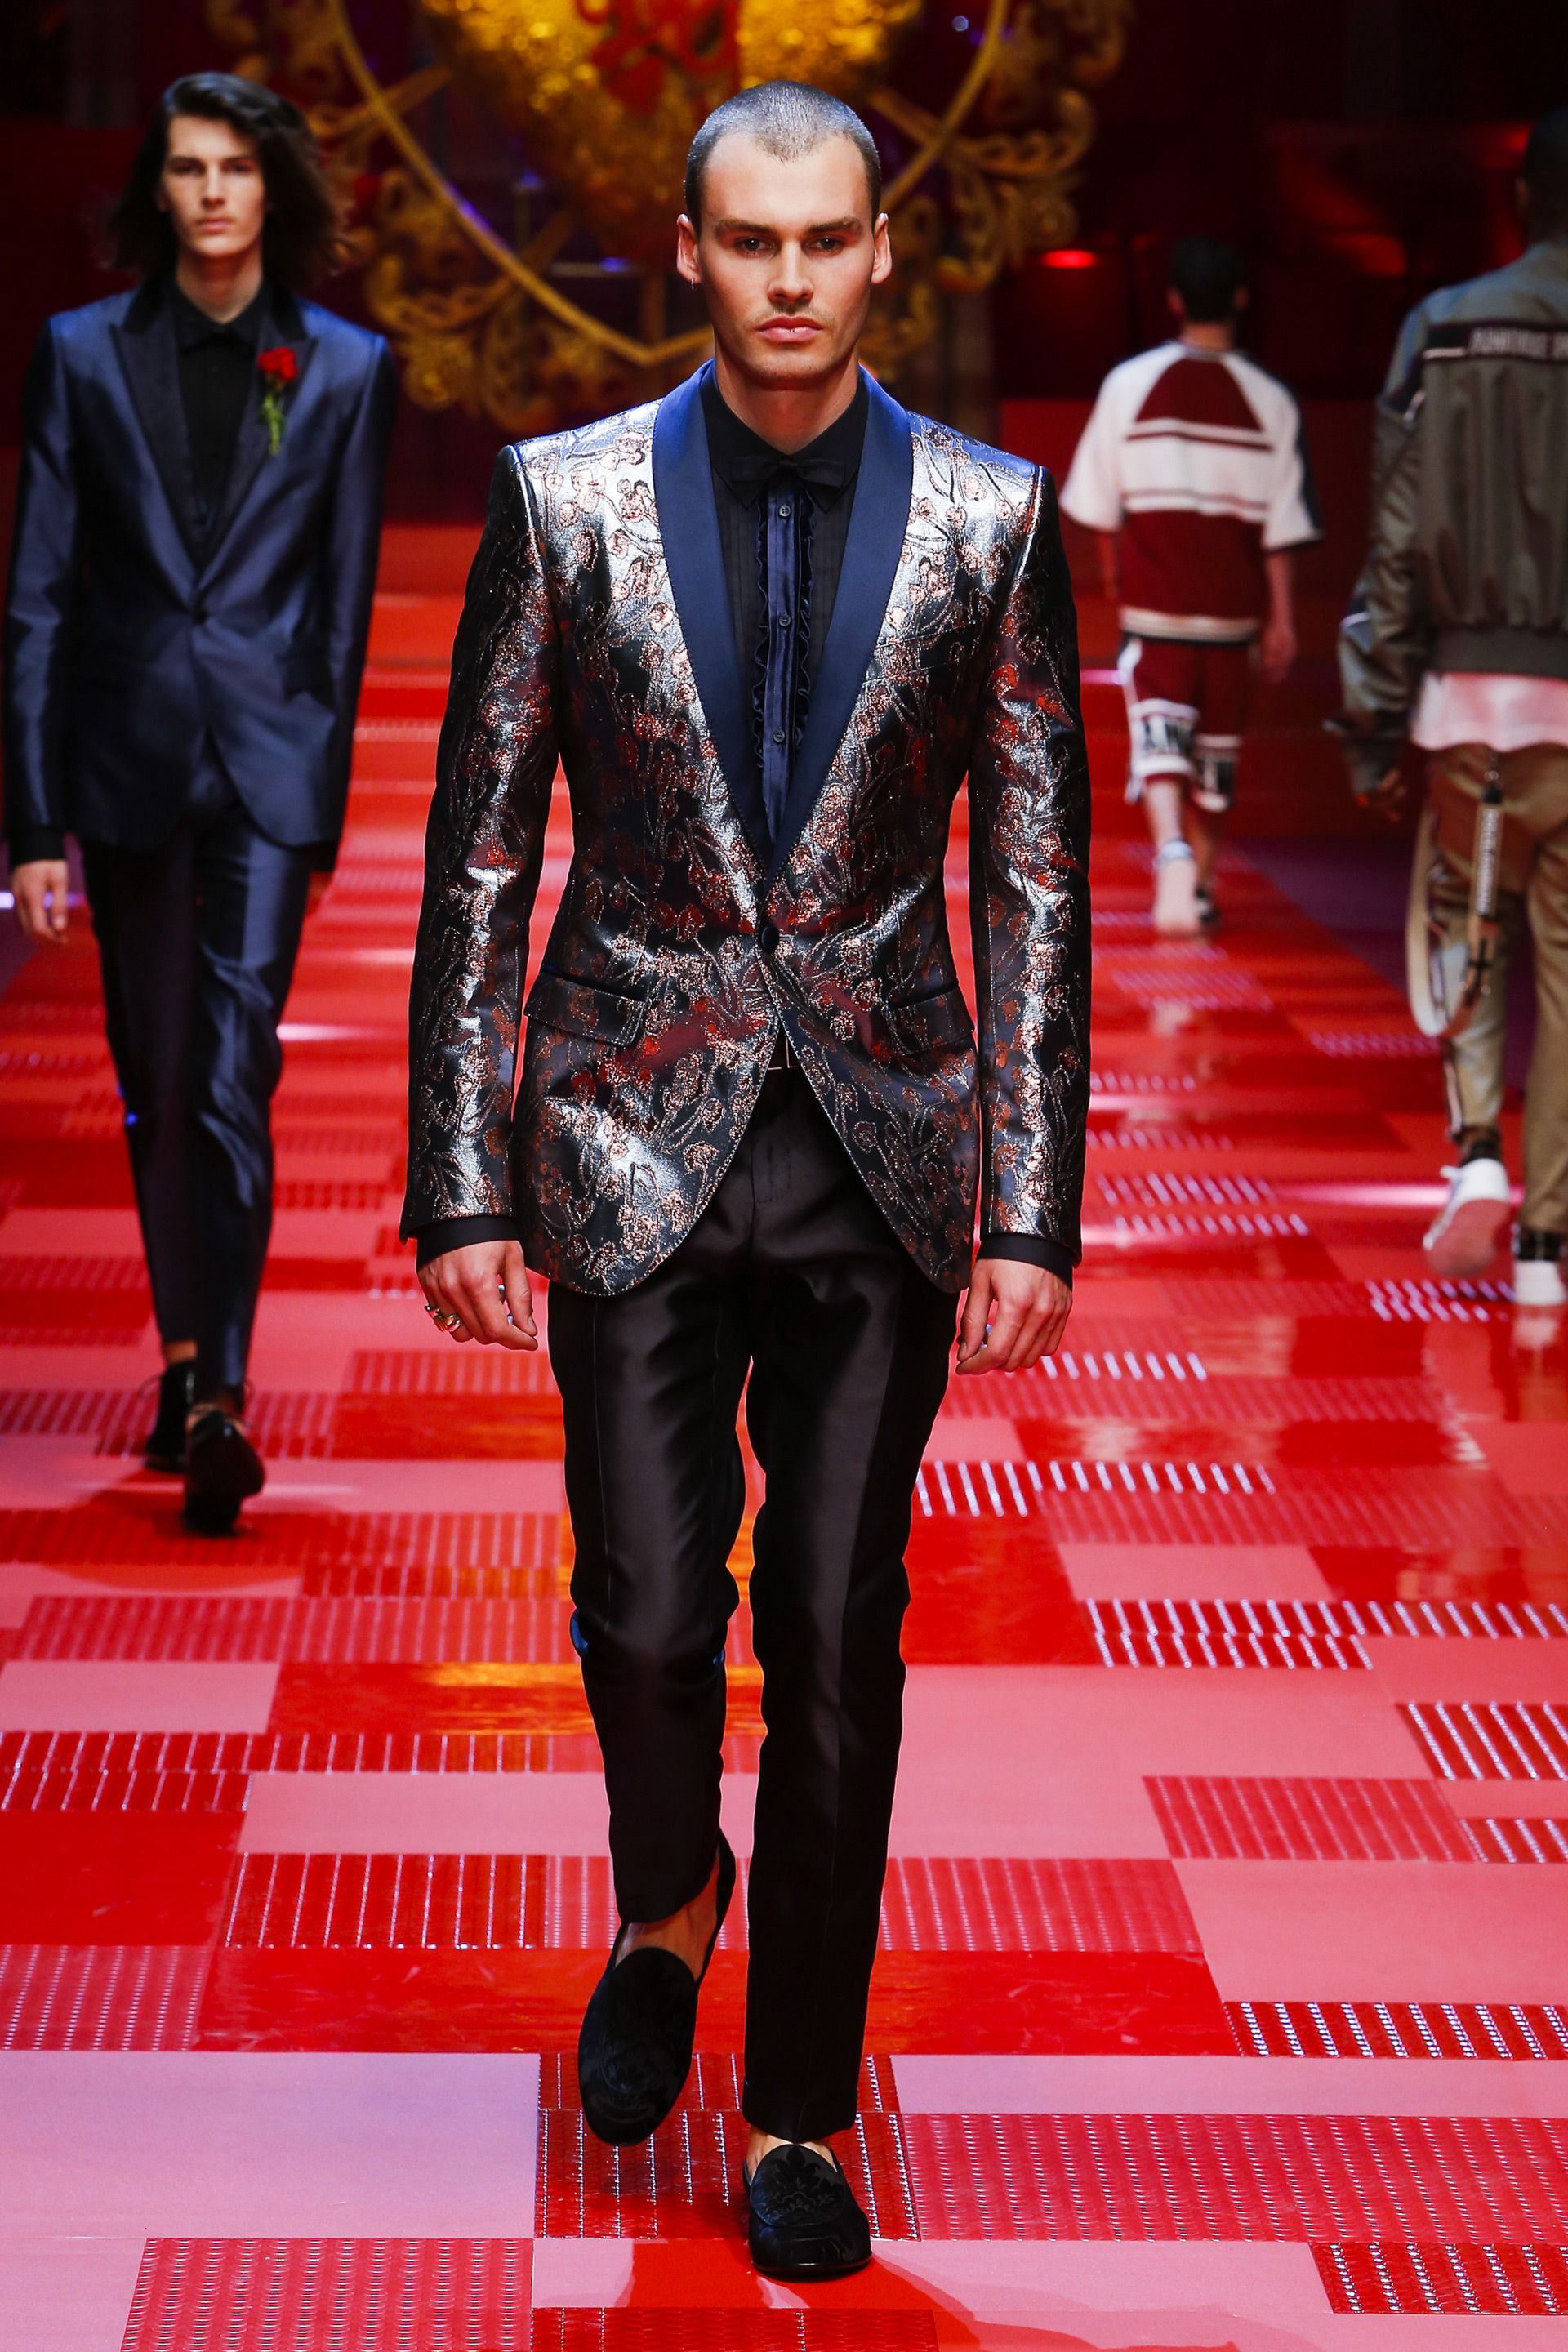 Discover Videos and Pictures of Dolce   Gabbana Summer 2018 Menswear  Fashion Show on Dolcegabbana.com. 629a8ec4285c